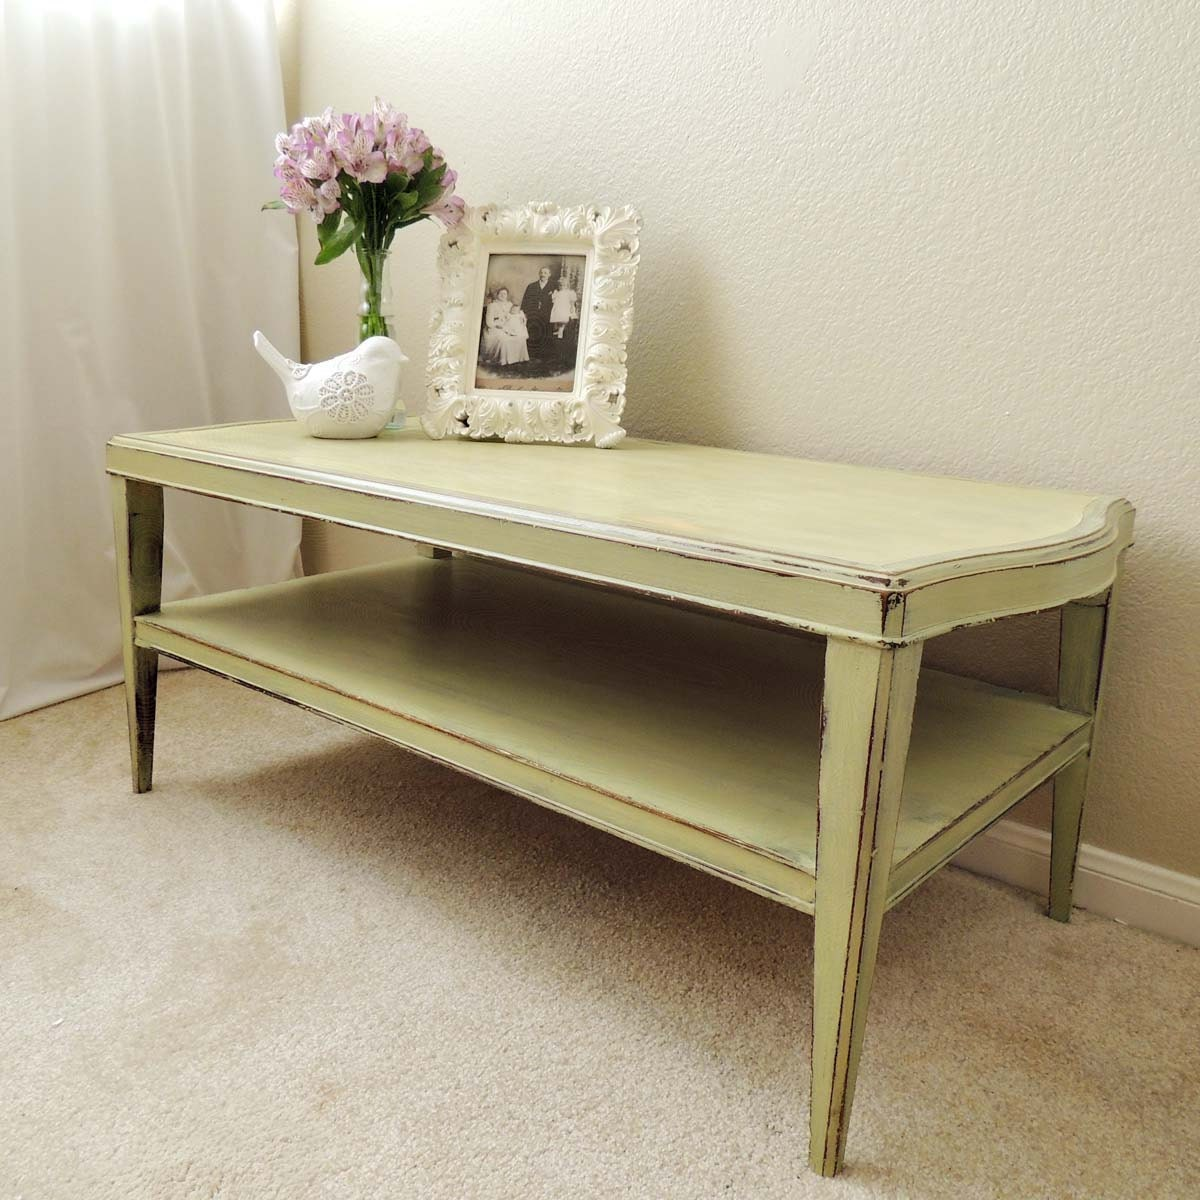 lucketts green two tiered coffee table. Black Bedroom Furniture Sets. Home Design Ideas